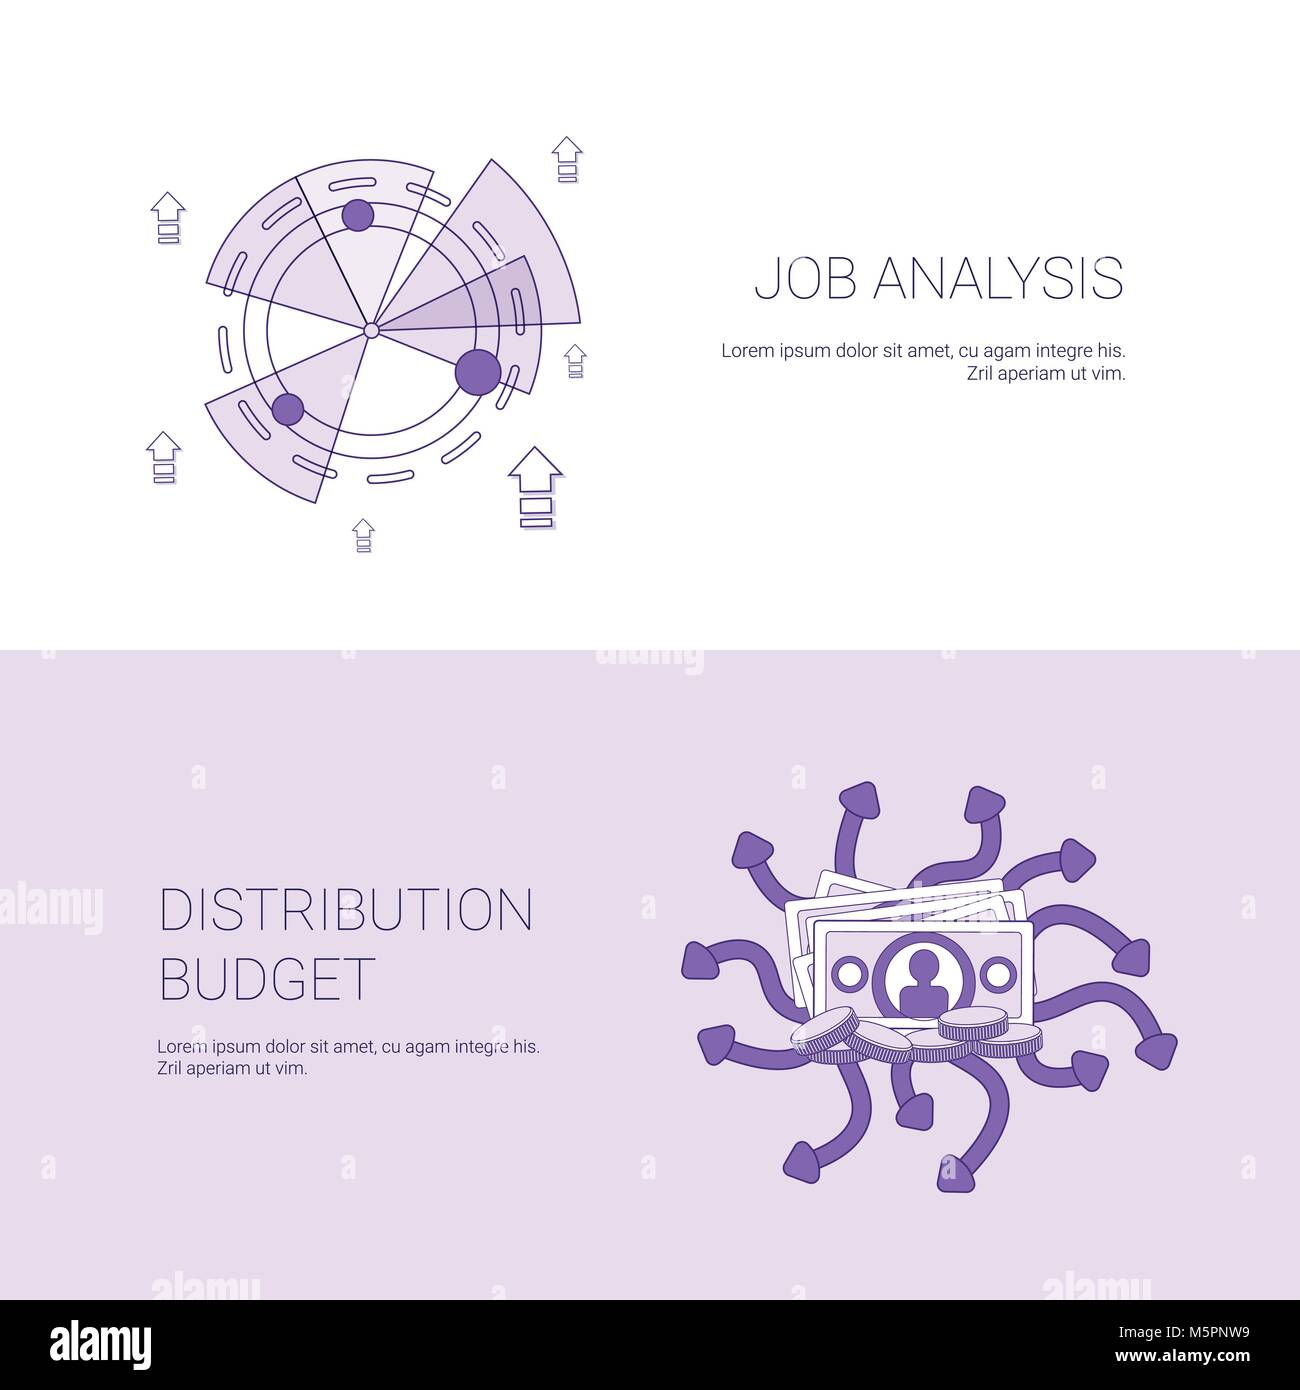 Job analysis and budget distribution concept template web banner job analysis and budget distribution concept template web banner with copy space ccuart Images